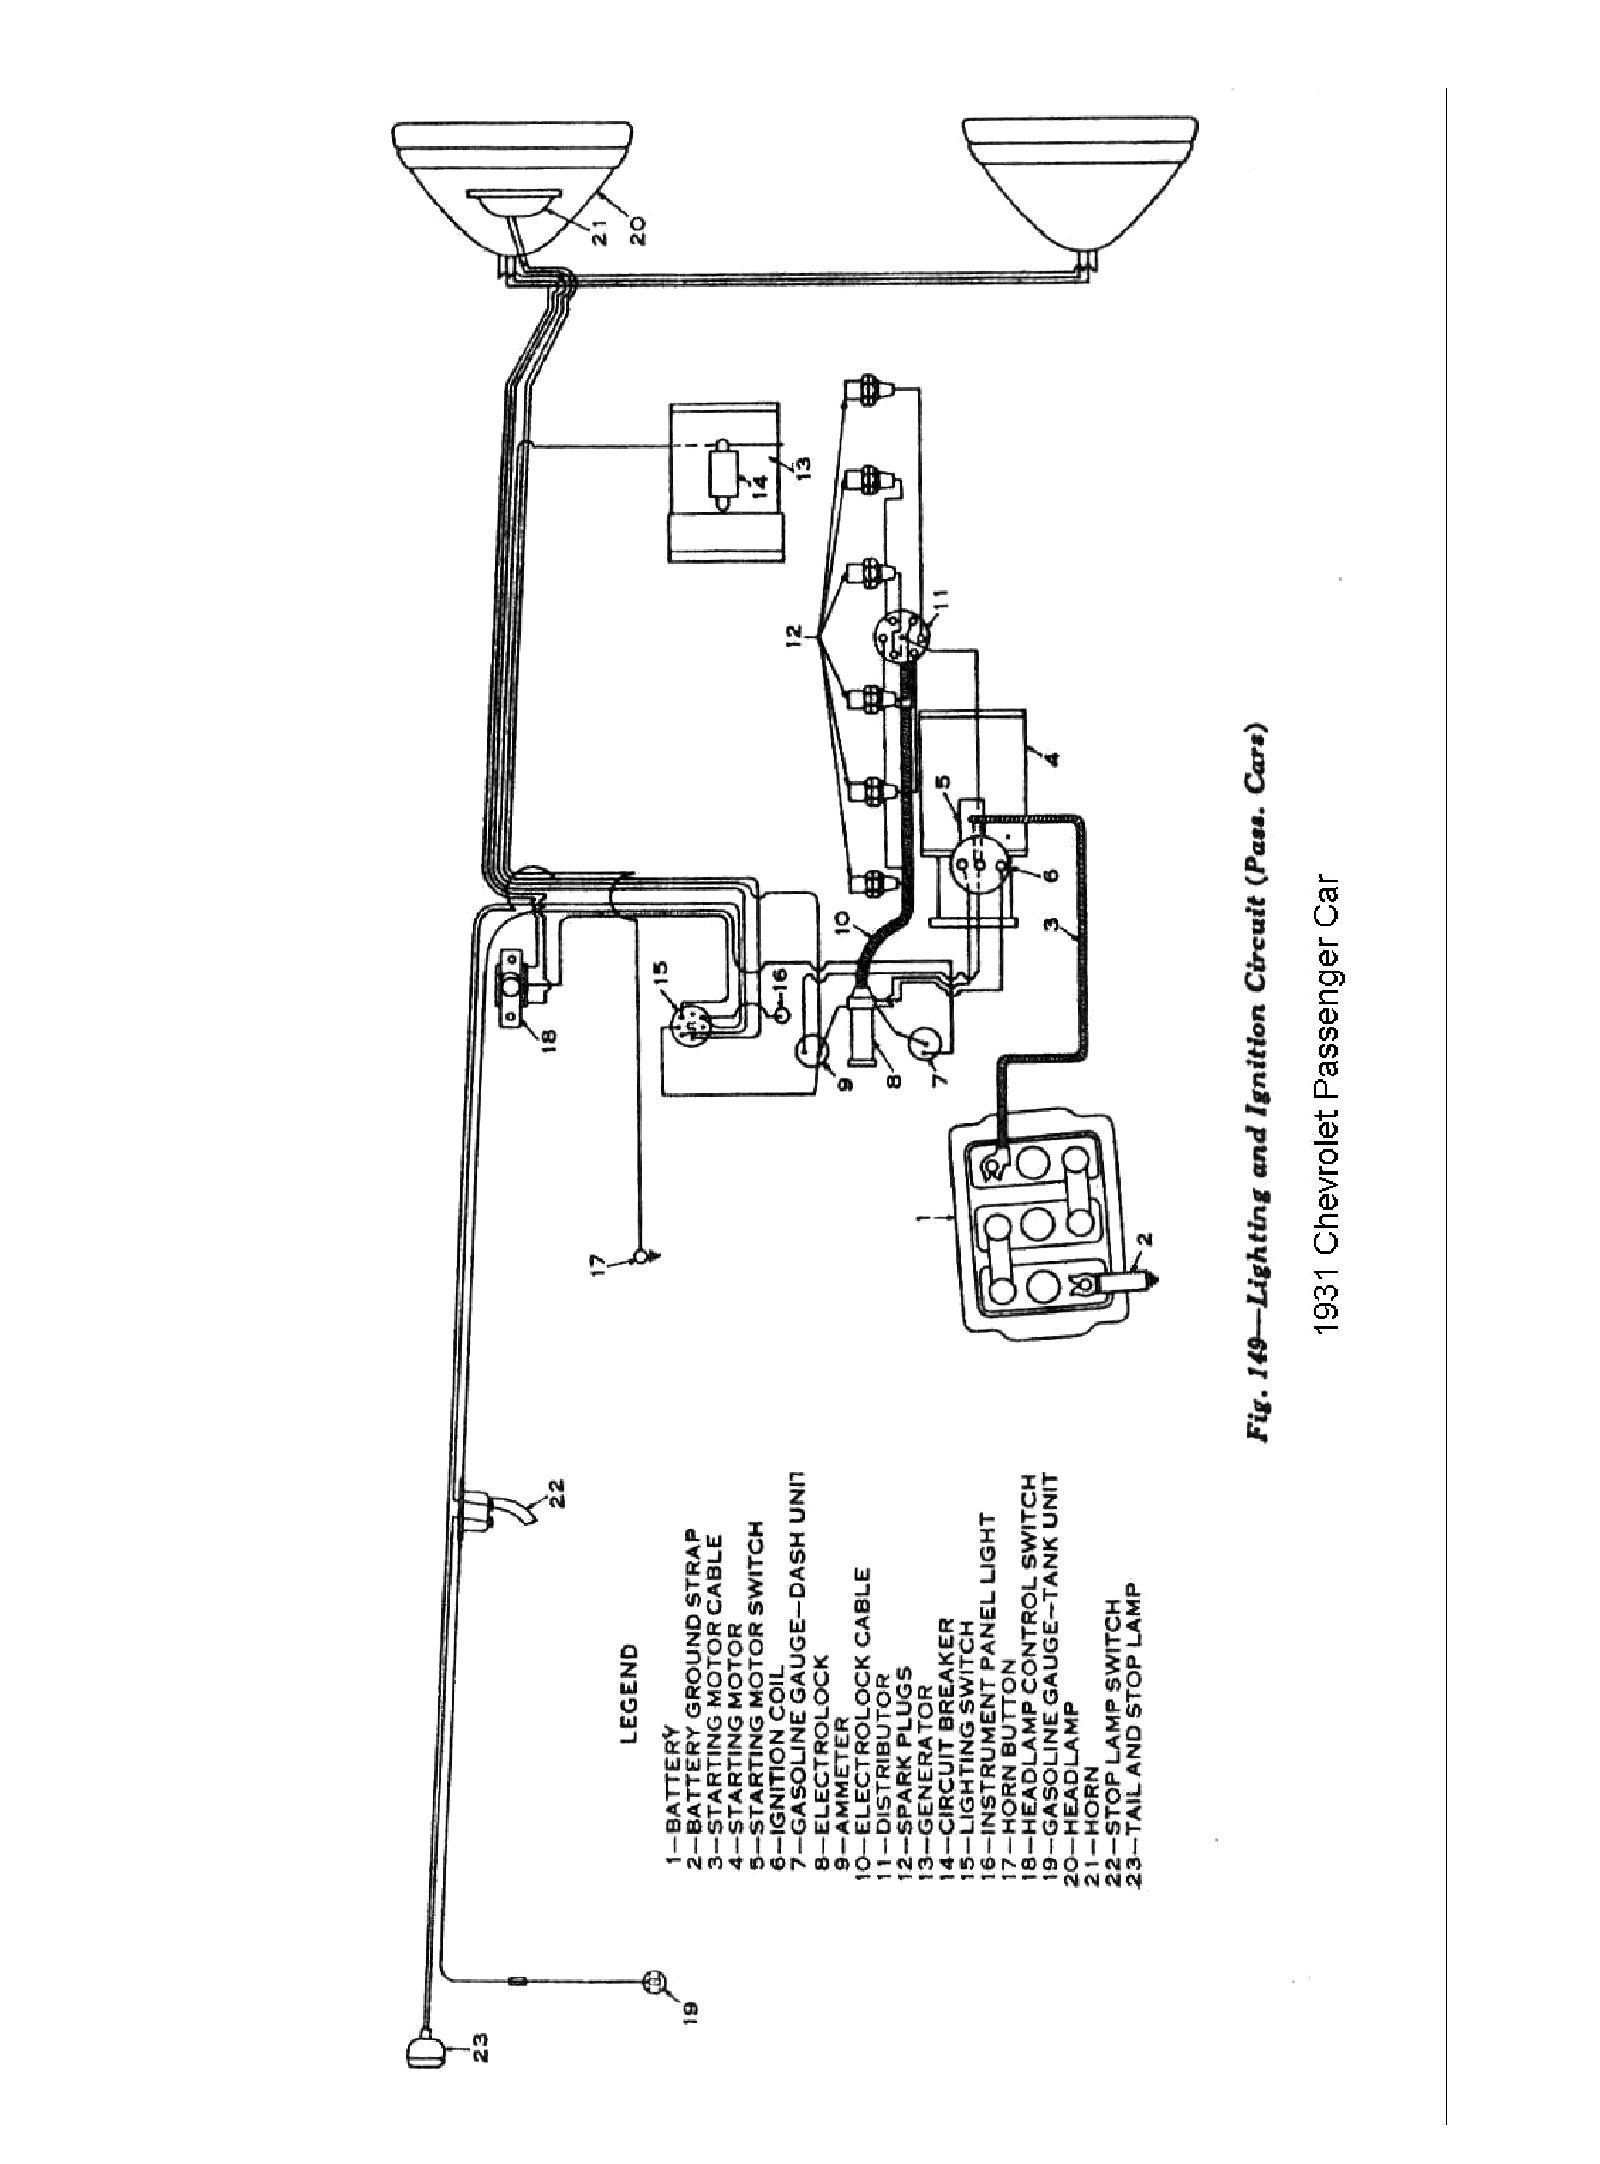 Car Dimmer Switch Wiring Diagram Chevy Wiring Diagrams